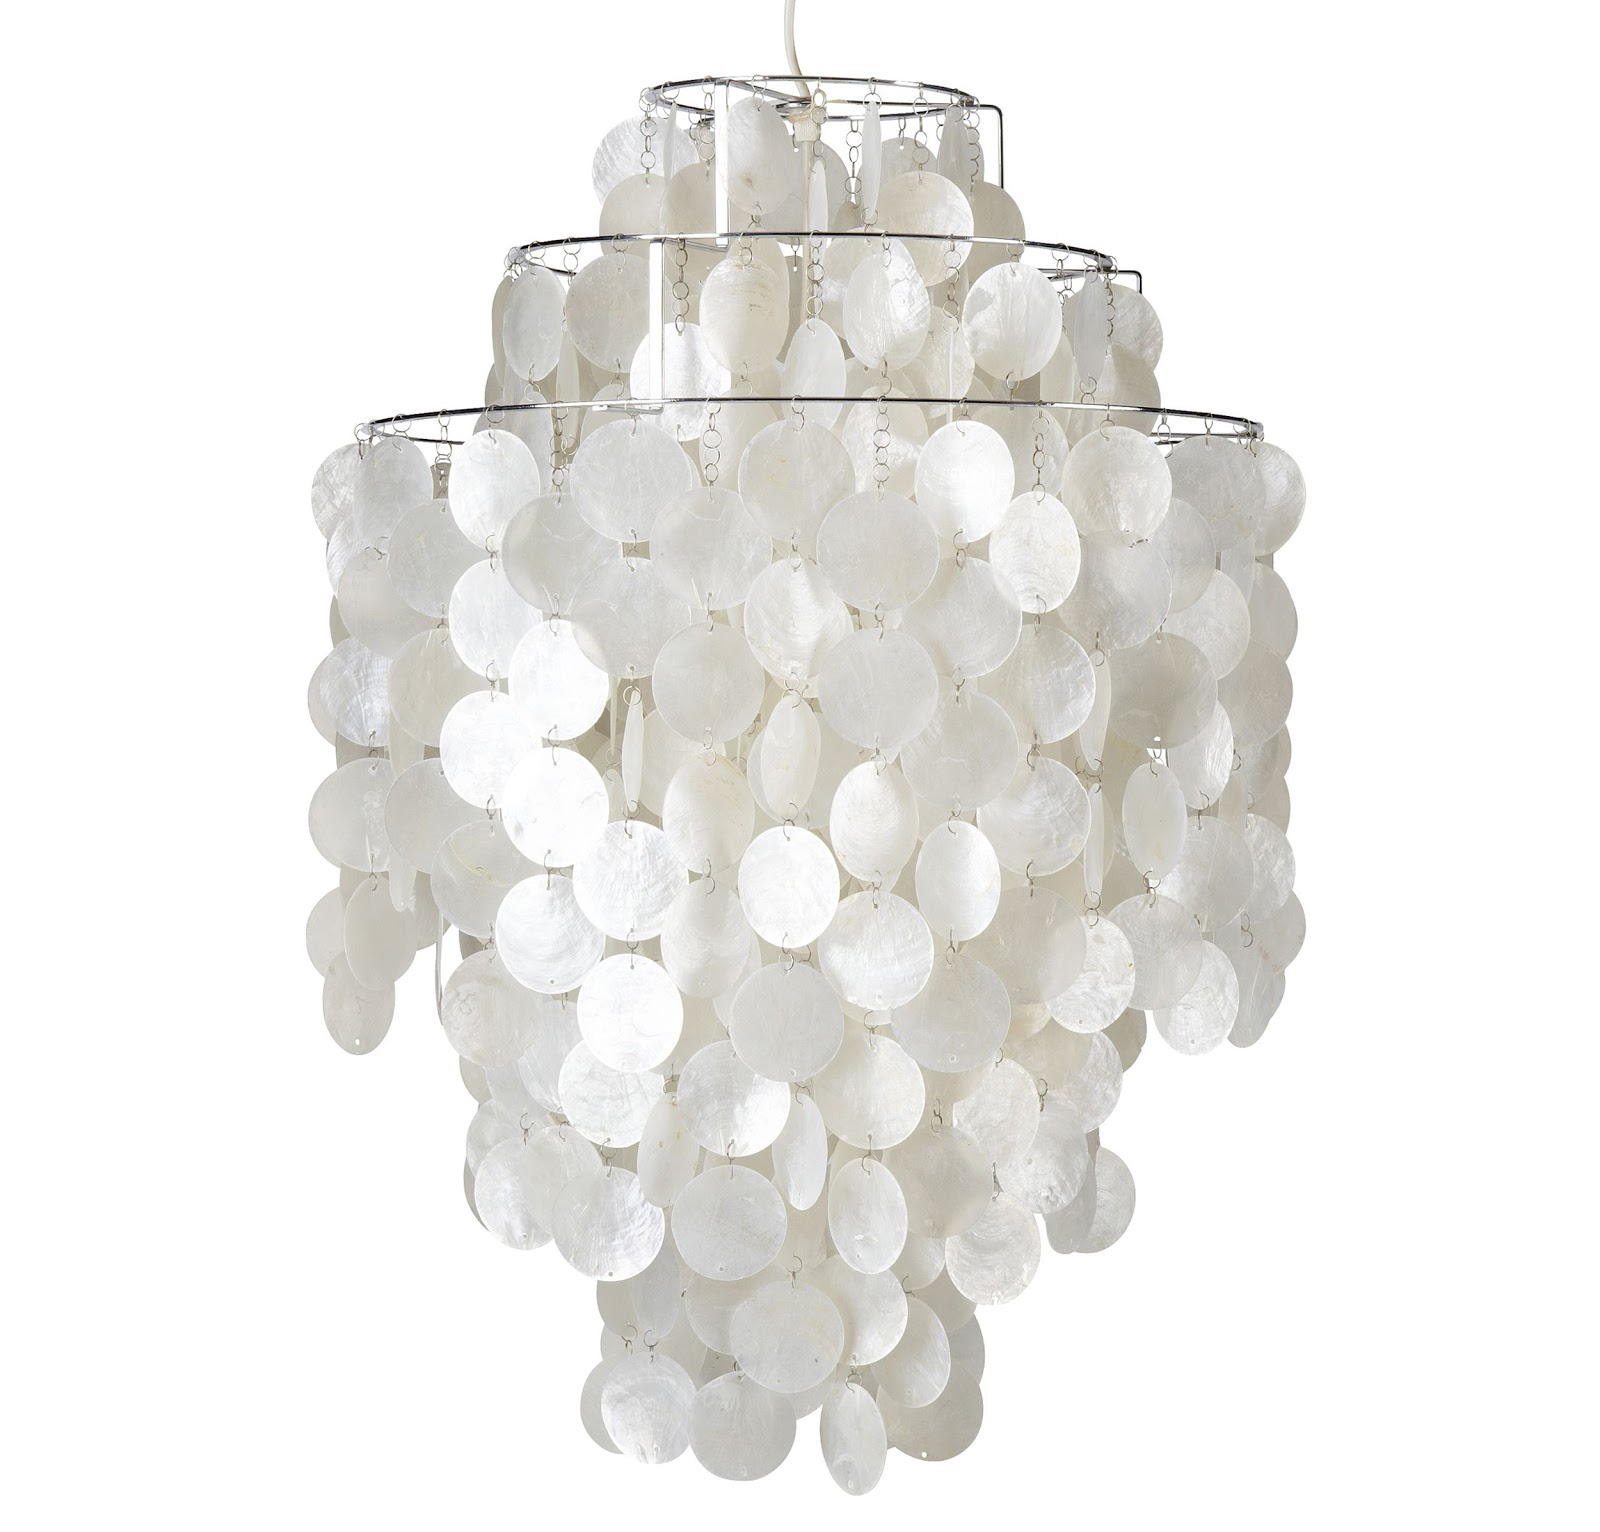 modern interior design: Fun-1DM™ - Capiz Shell Lamp : Verner Panton